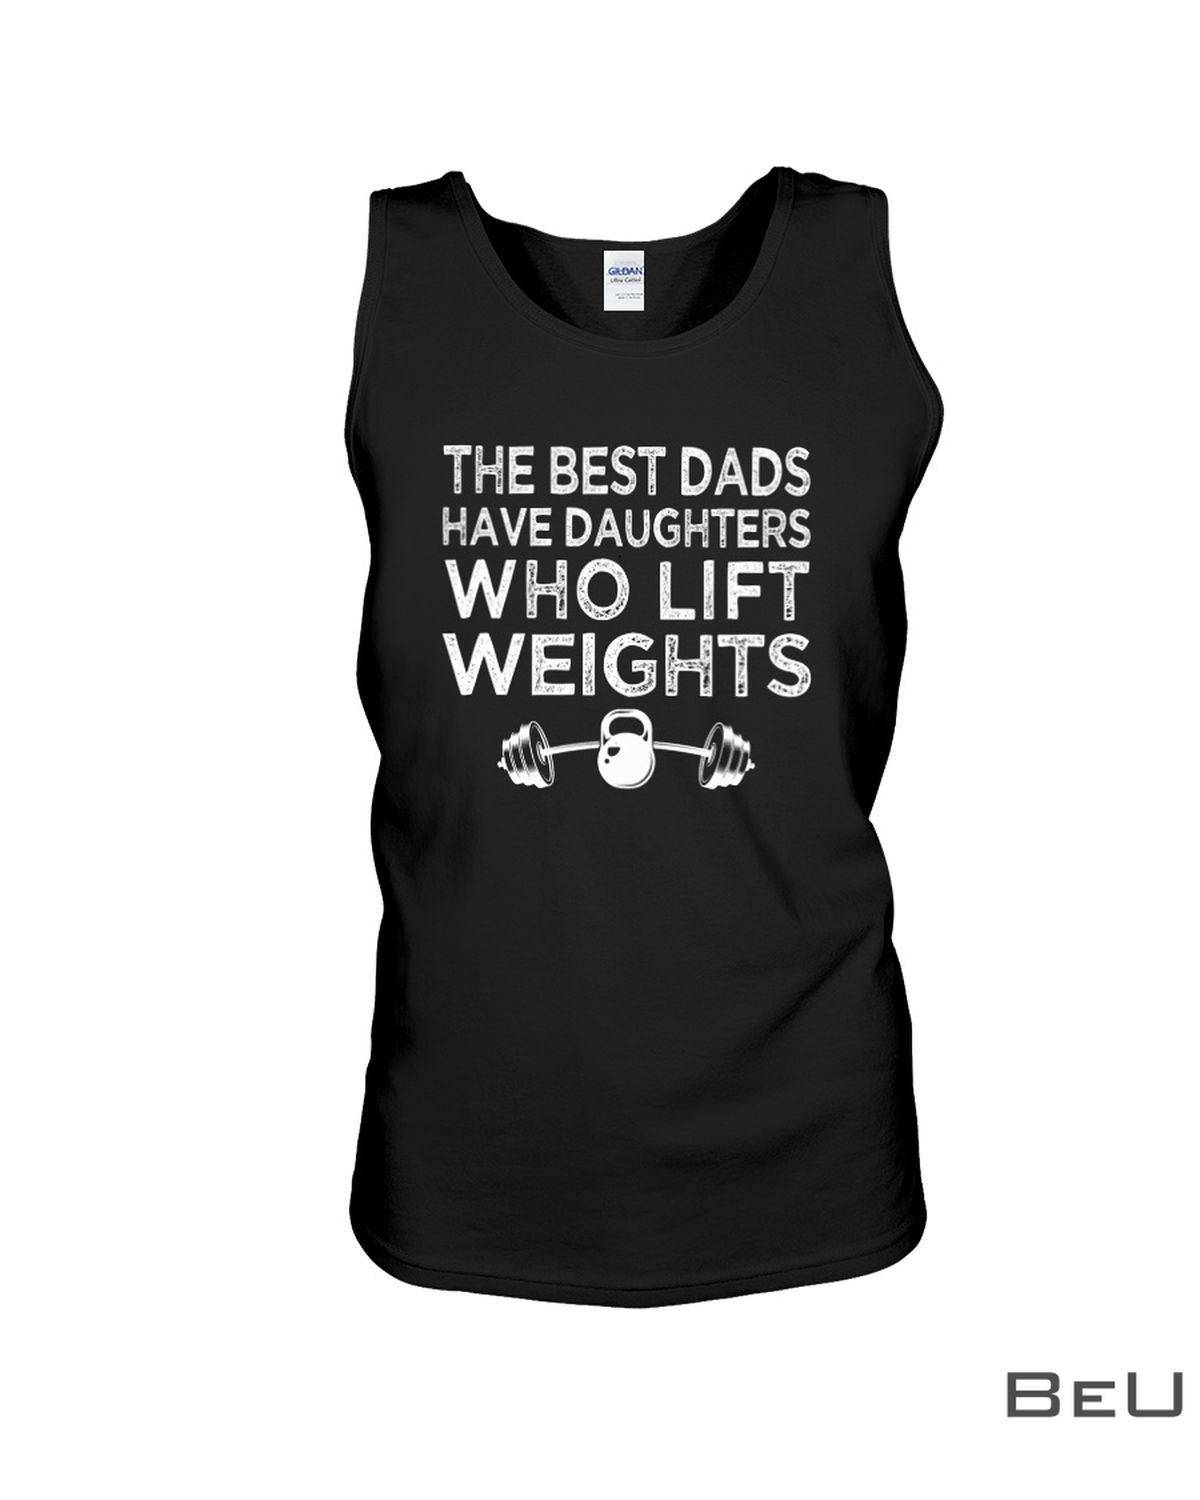 The Best Dads Have Daughters Who Lift Weights Shirtx